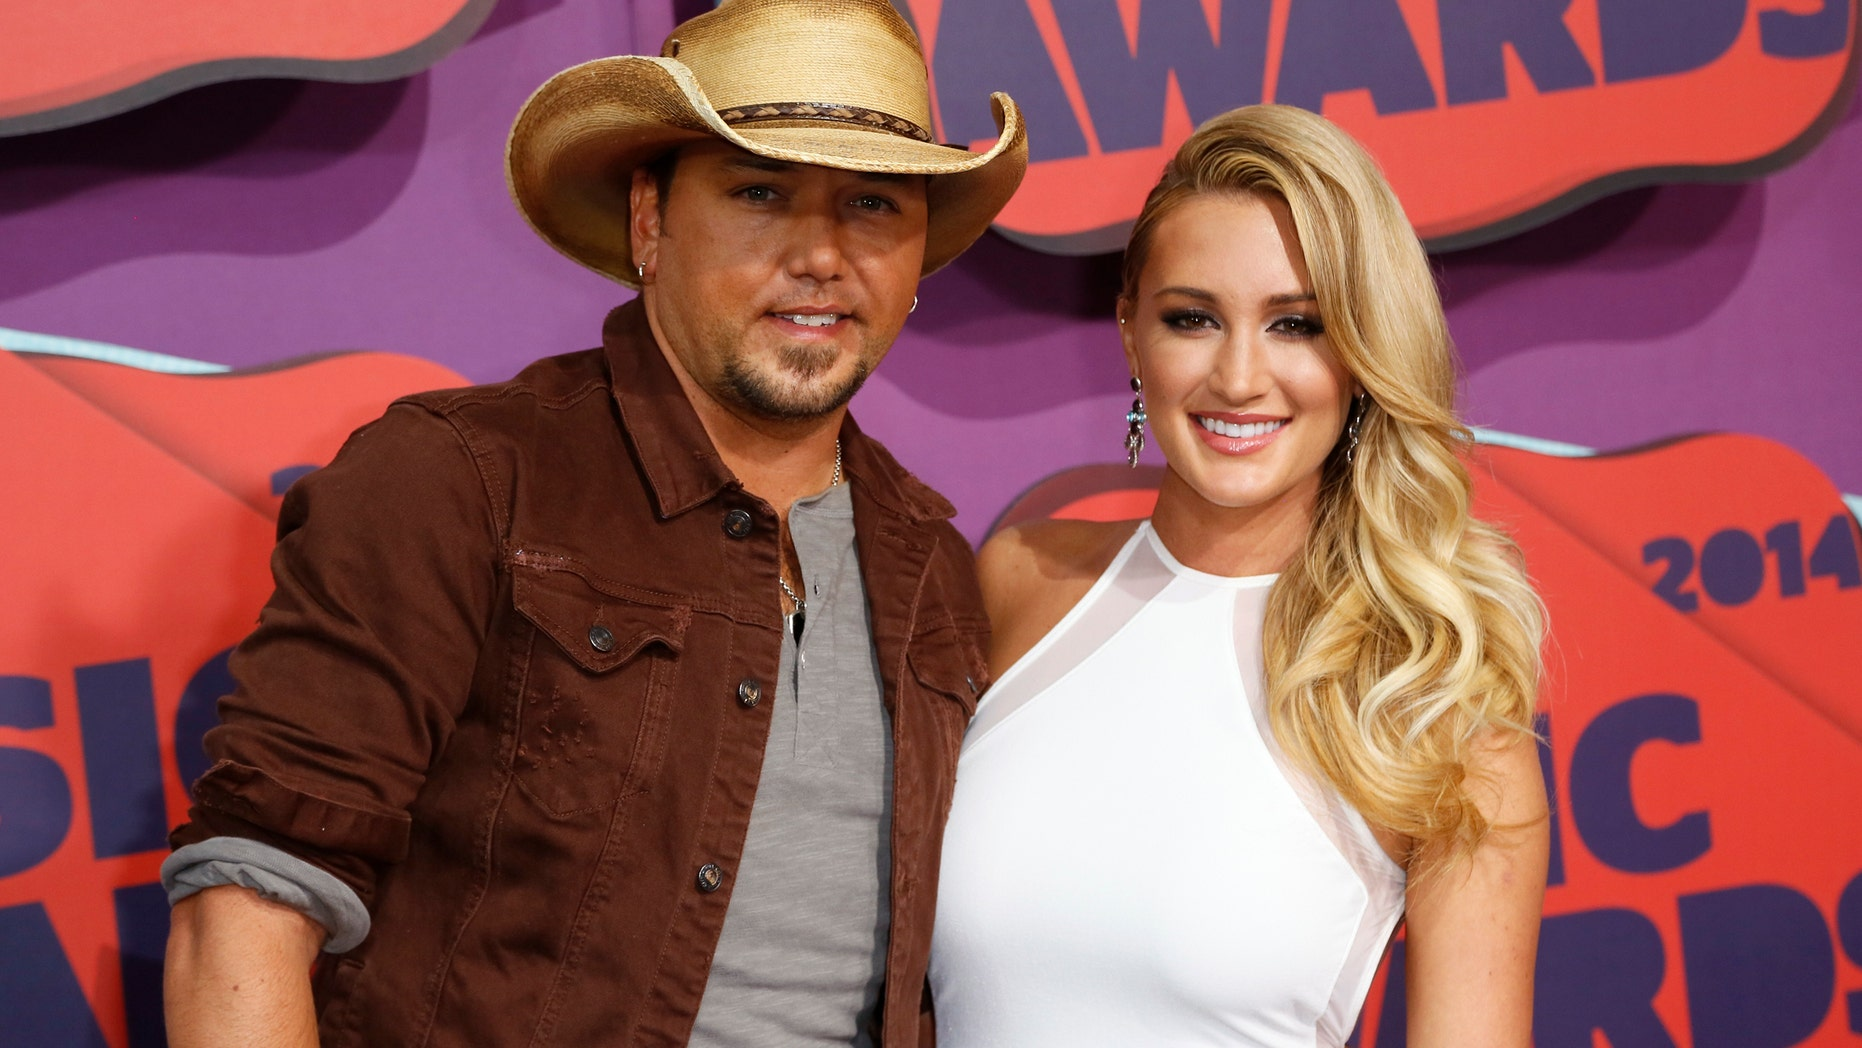 Musician Jason Aldean and Brittany Kerr arrive at the 2014 CMT Music Awards in Nashville, Tennessee June 4, 2014.